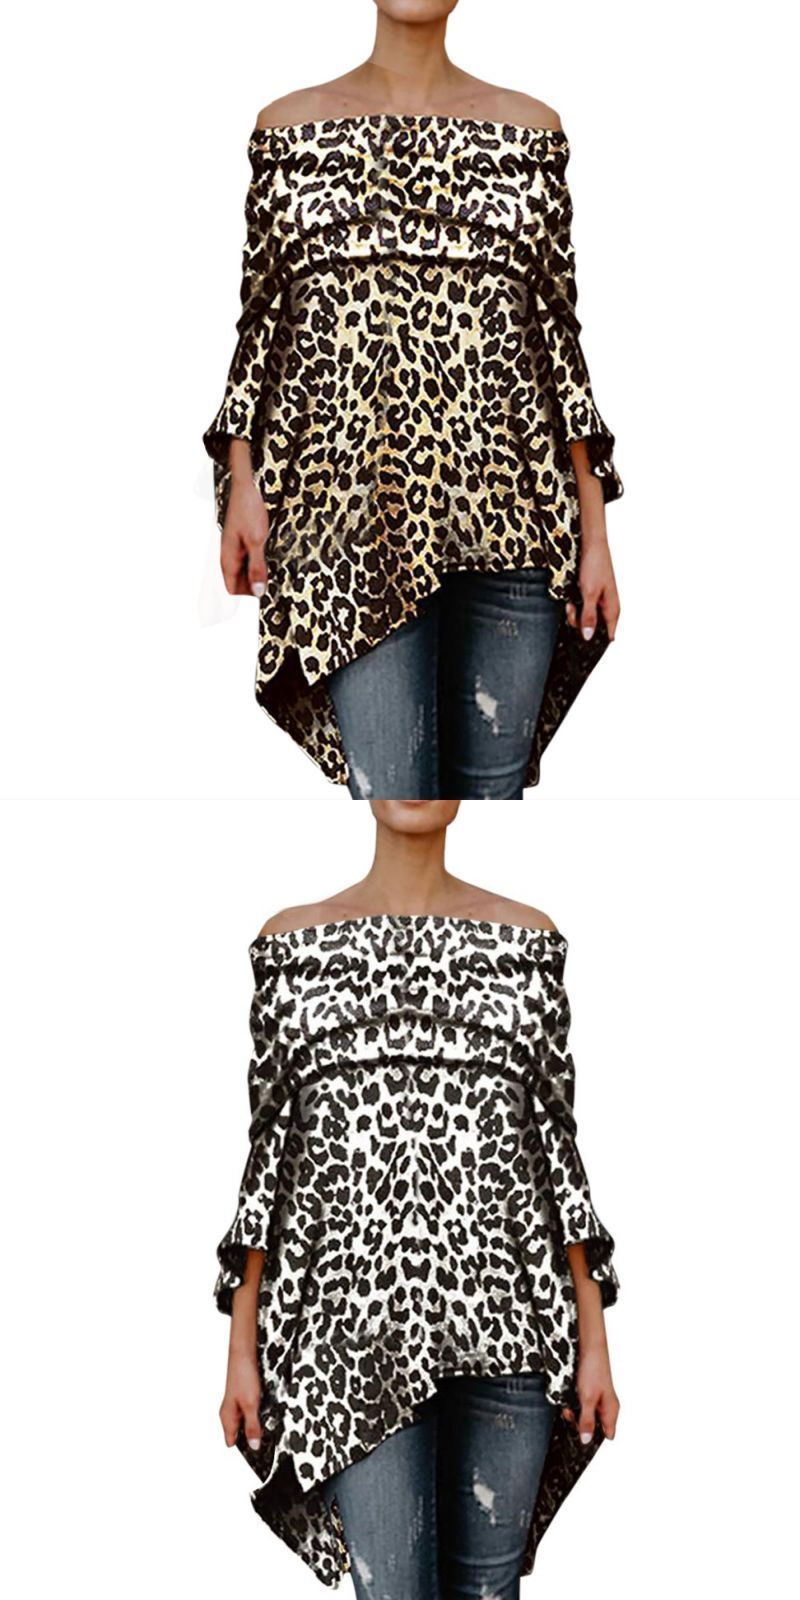 e0189262cea93 Women blouse fashion women off shoulder leopard printed sexy top women long  sleeve tops blouse oc16  polyester  long  casual  batik  full  none  leopard  ...